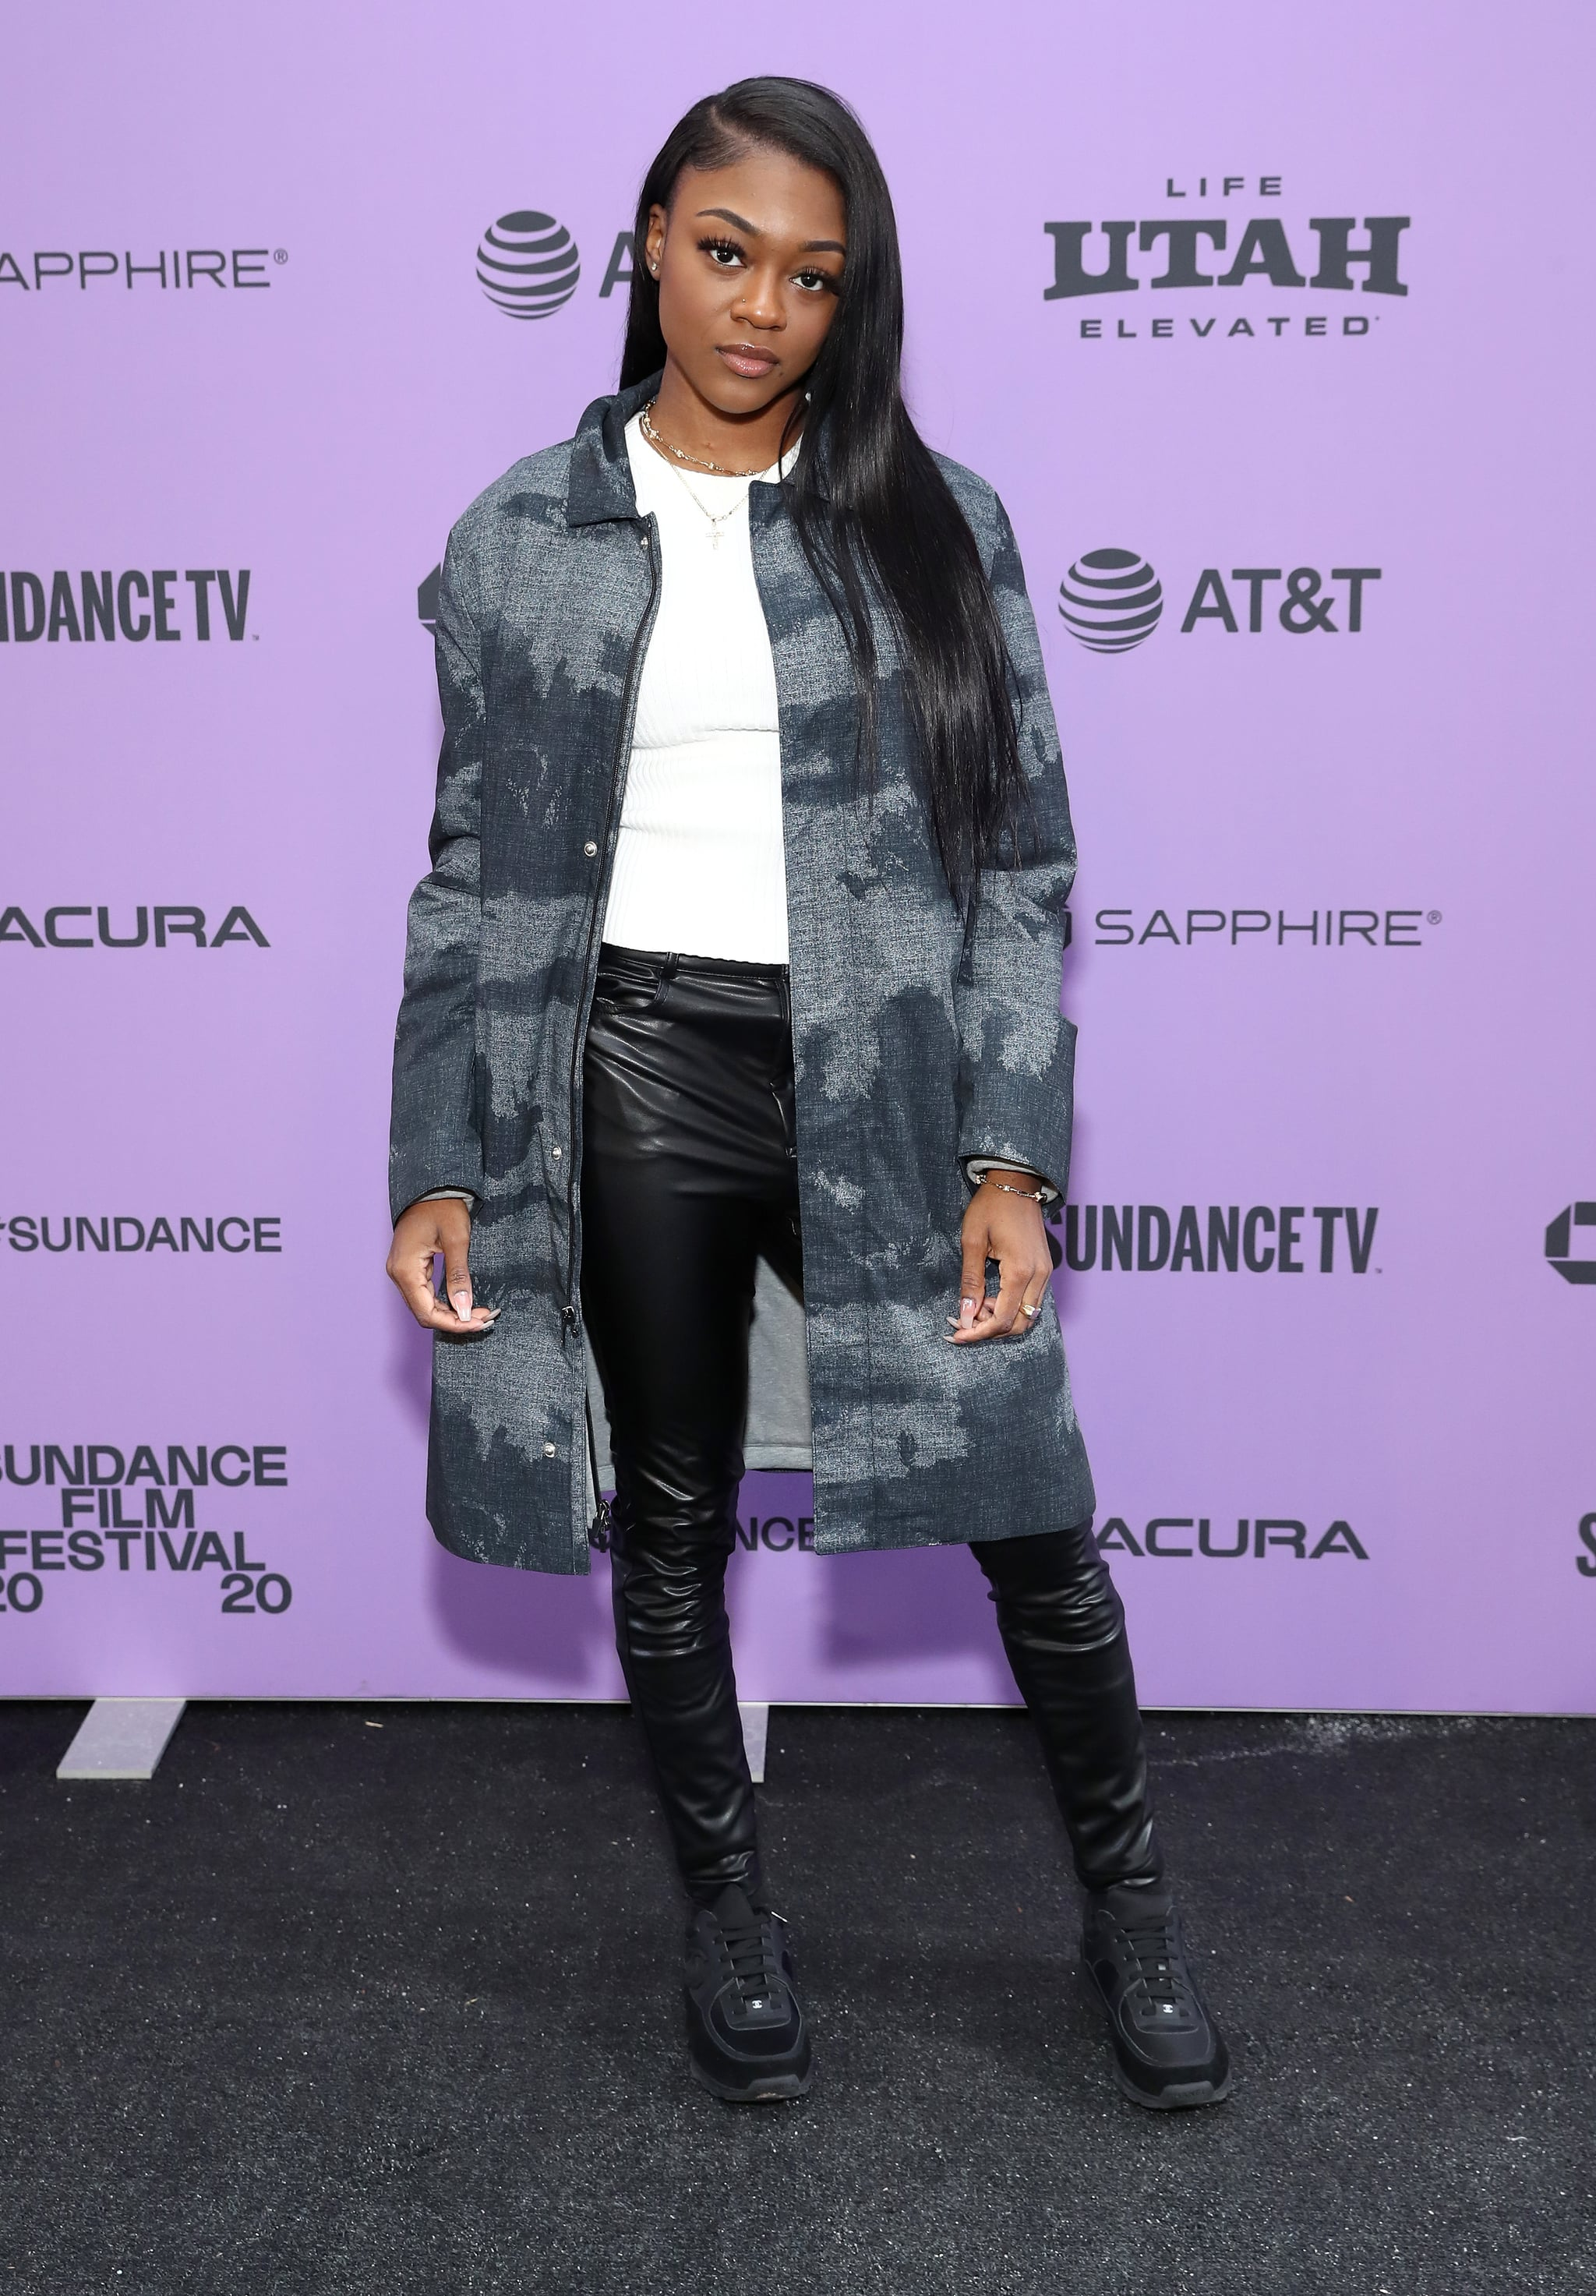 PARK CITY, UTAH - JANUARY 25: Imani Lewis attends the 2020 Sundance Film Festival -